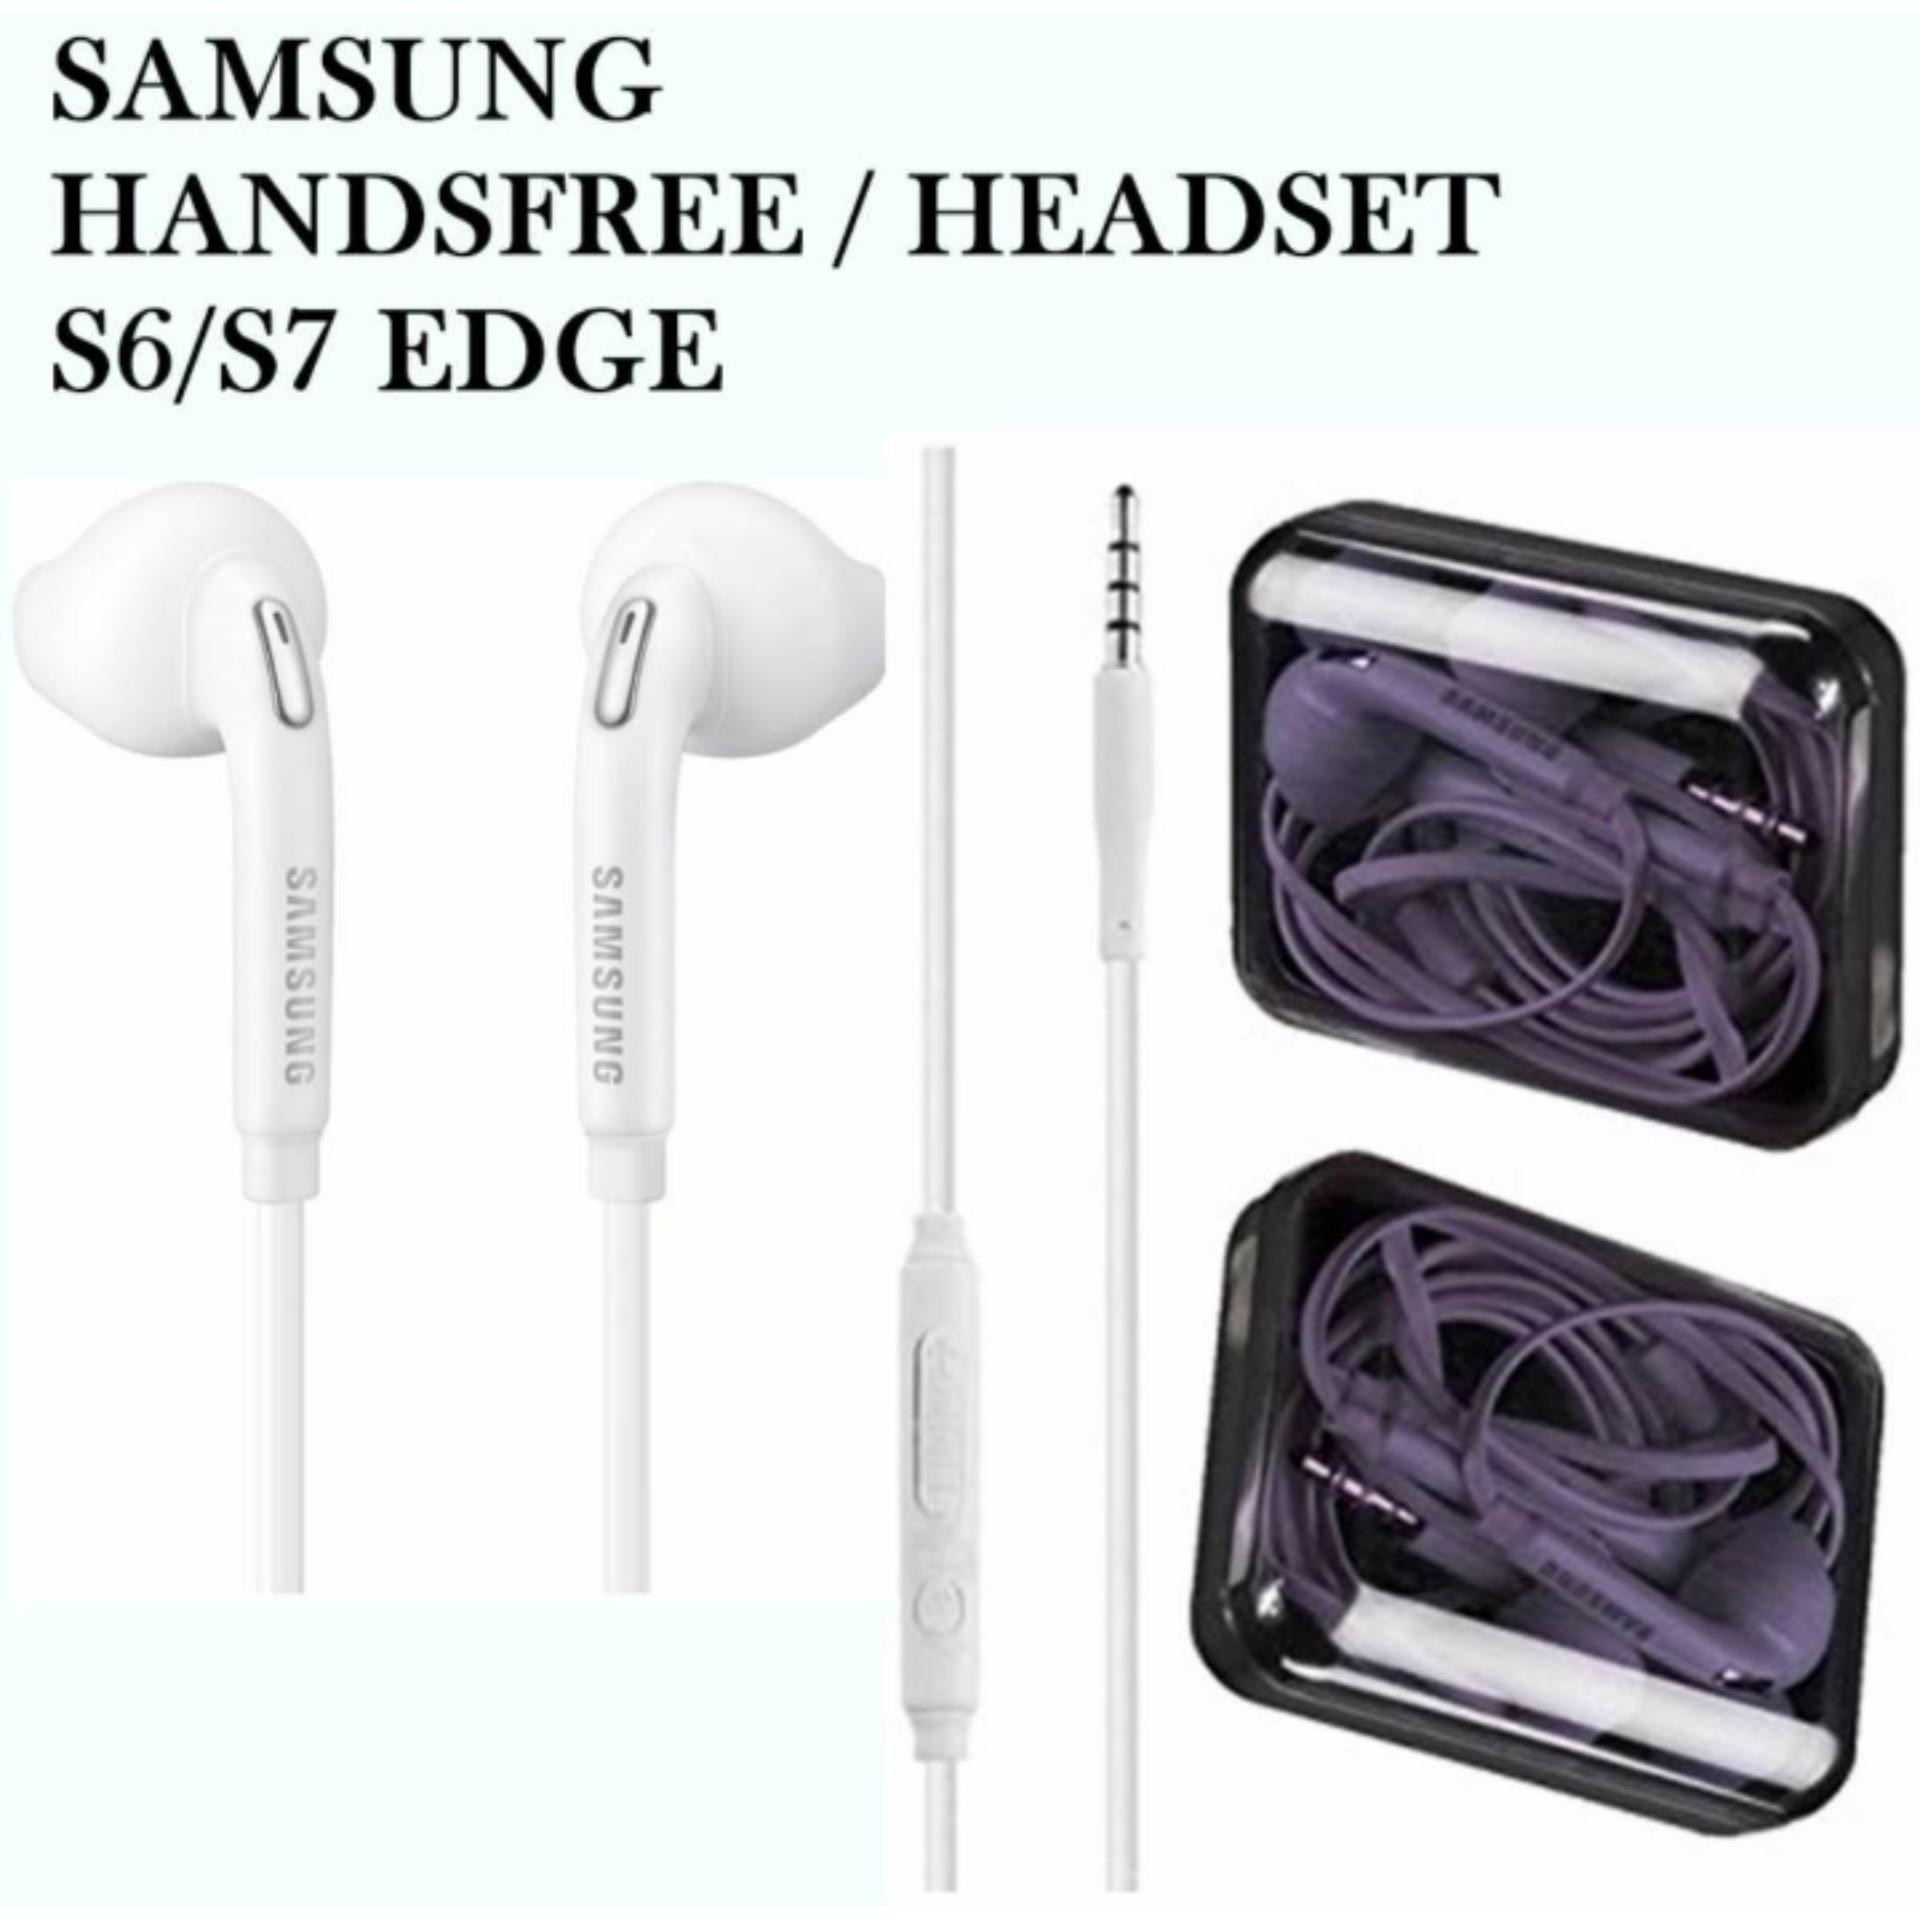 Samsung Ig 935 In Ear Headset Hansfree Audio Voice Hd Suported All Stereo Hs330 Putih Earphone Handsfree For Galaxy S6 S7 Edge Original